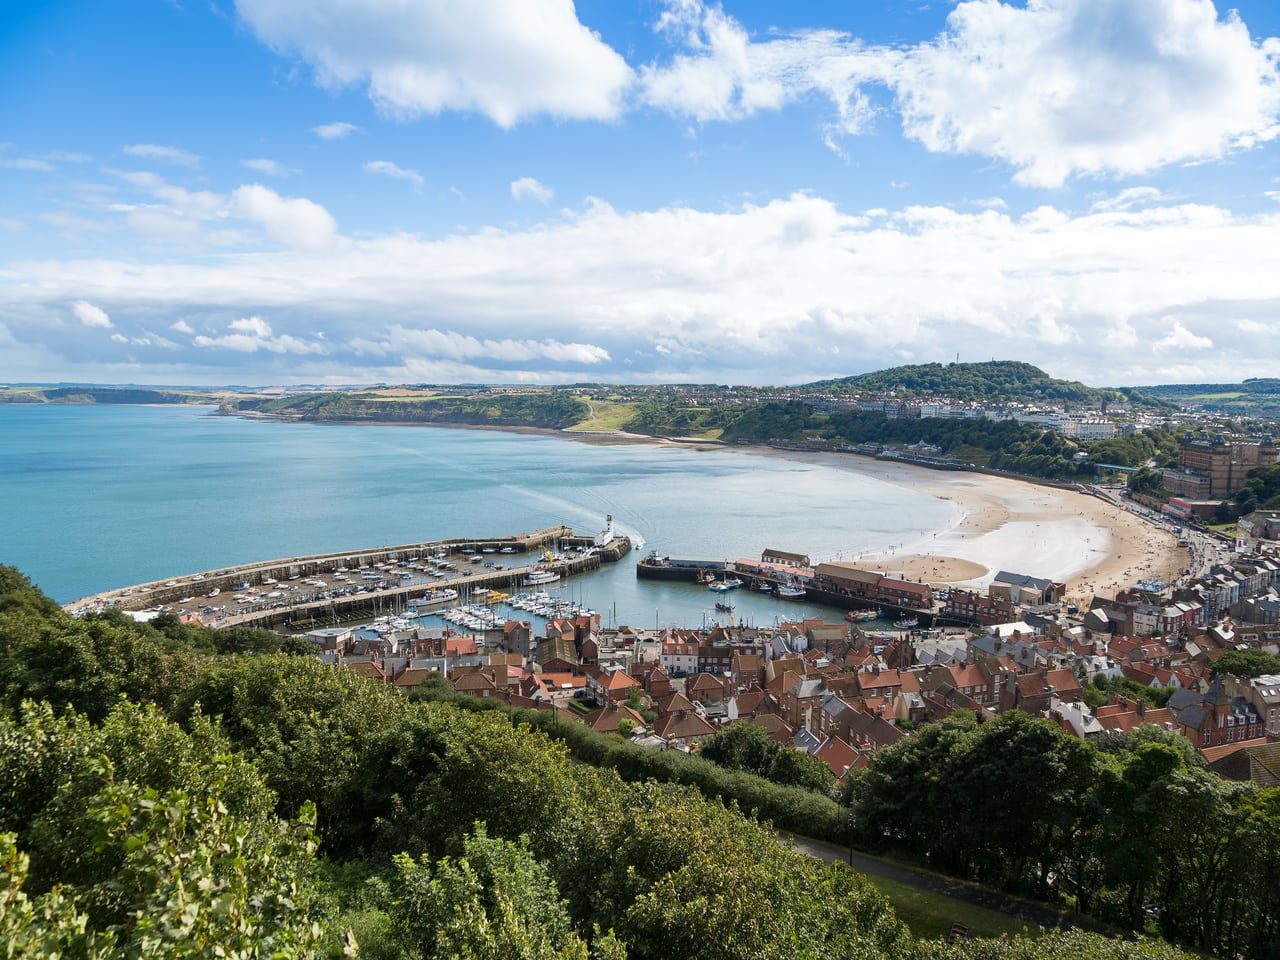 The coastal town of Scarborough in North Yorkshire - one of the great days out with kids.